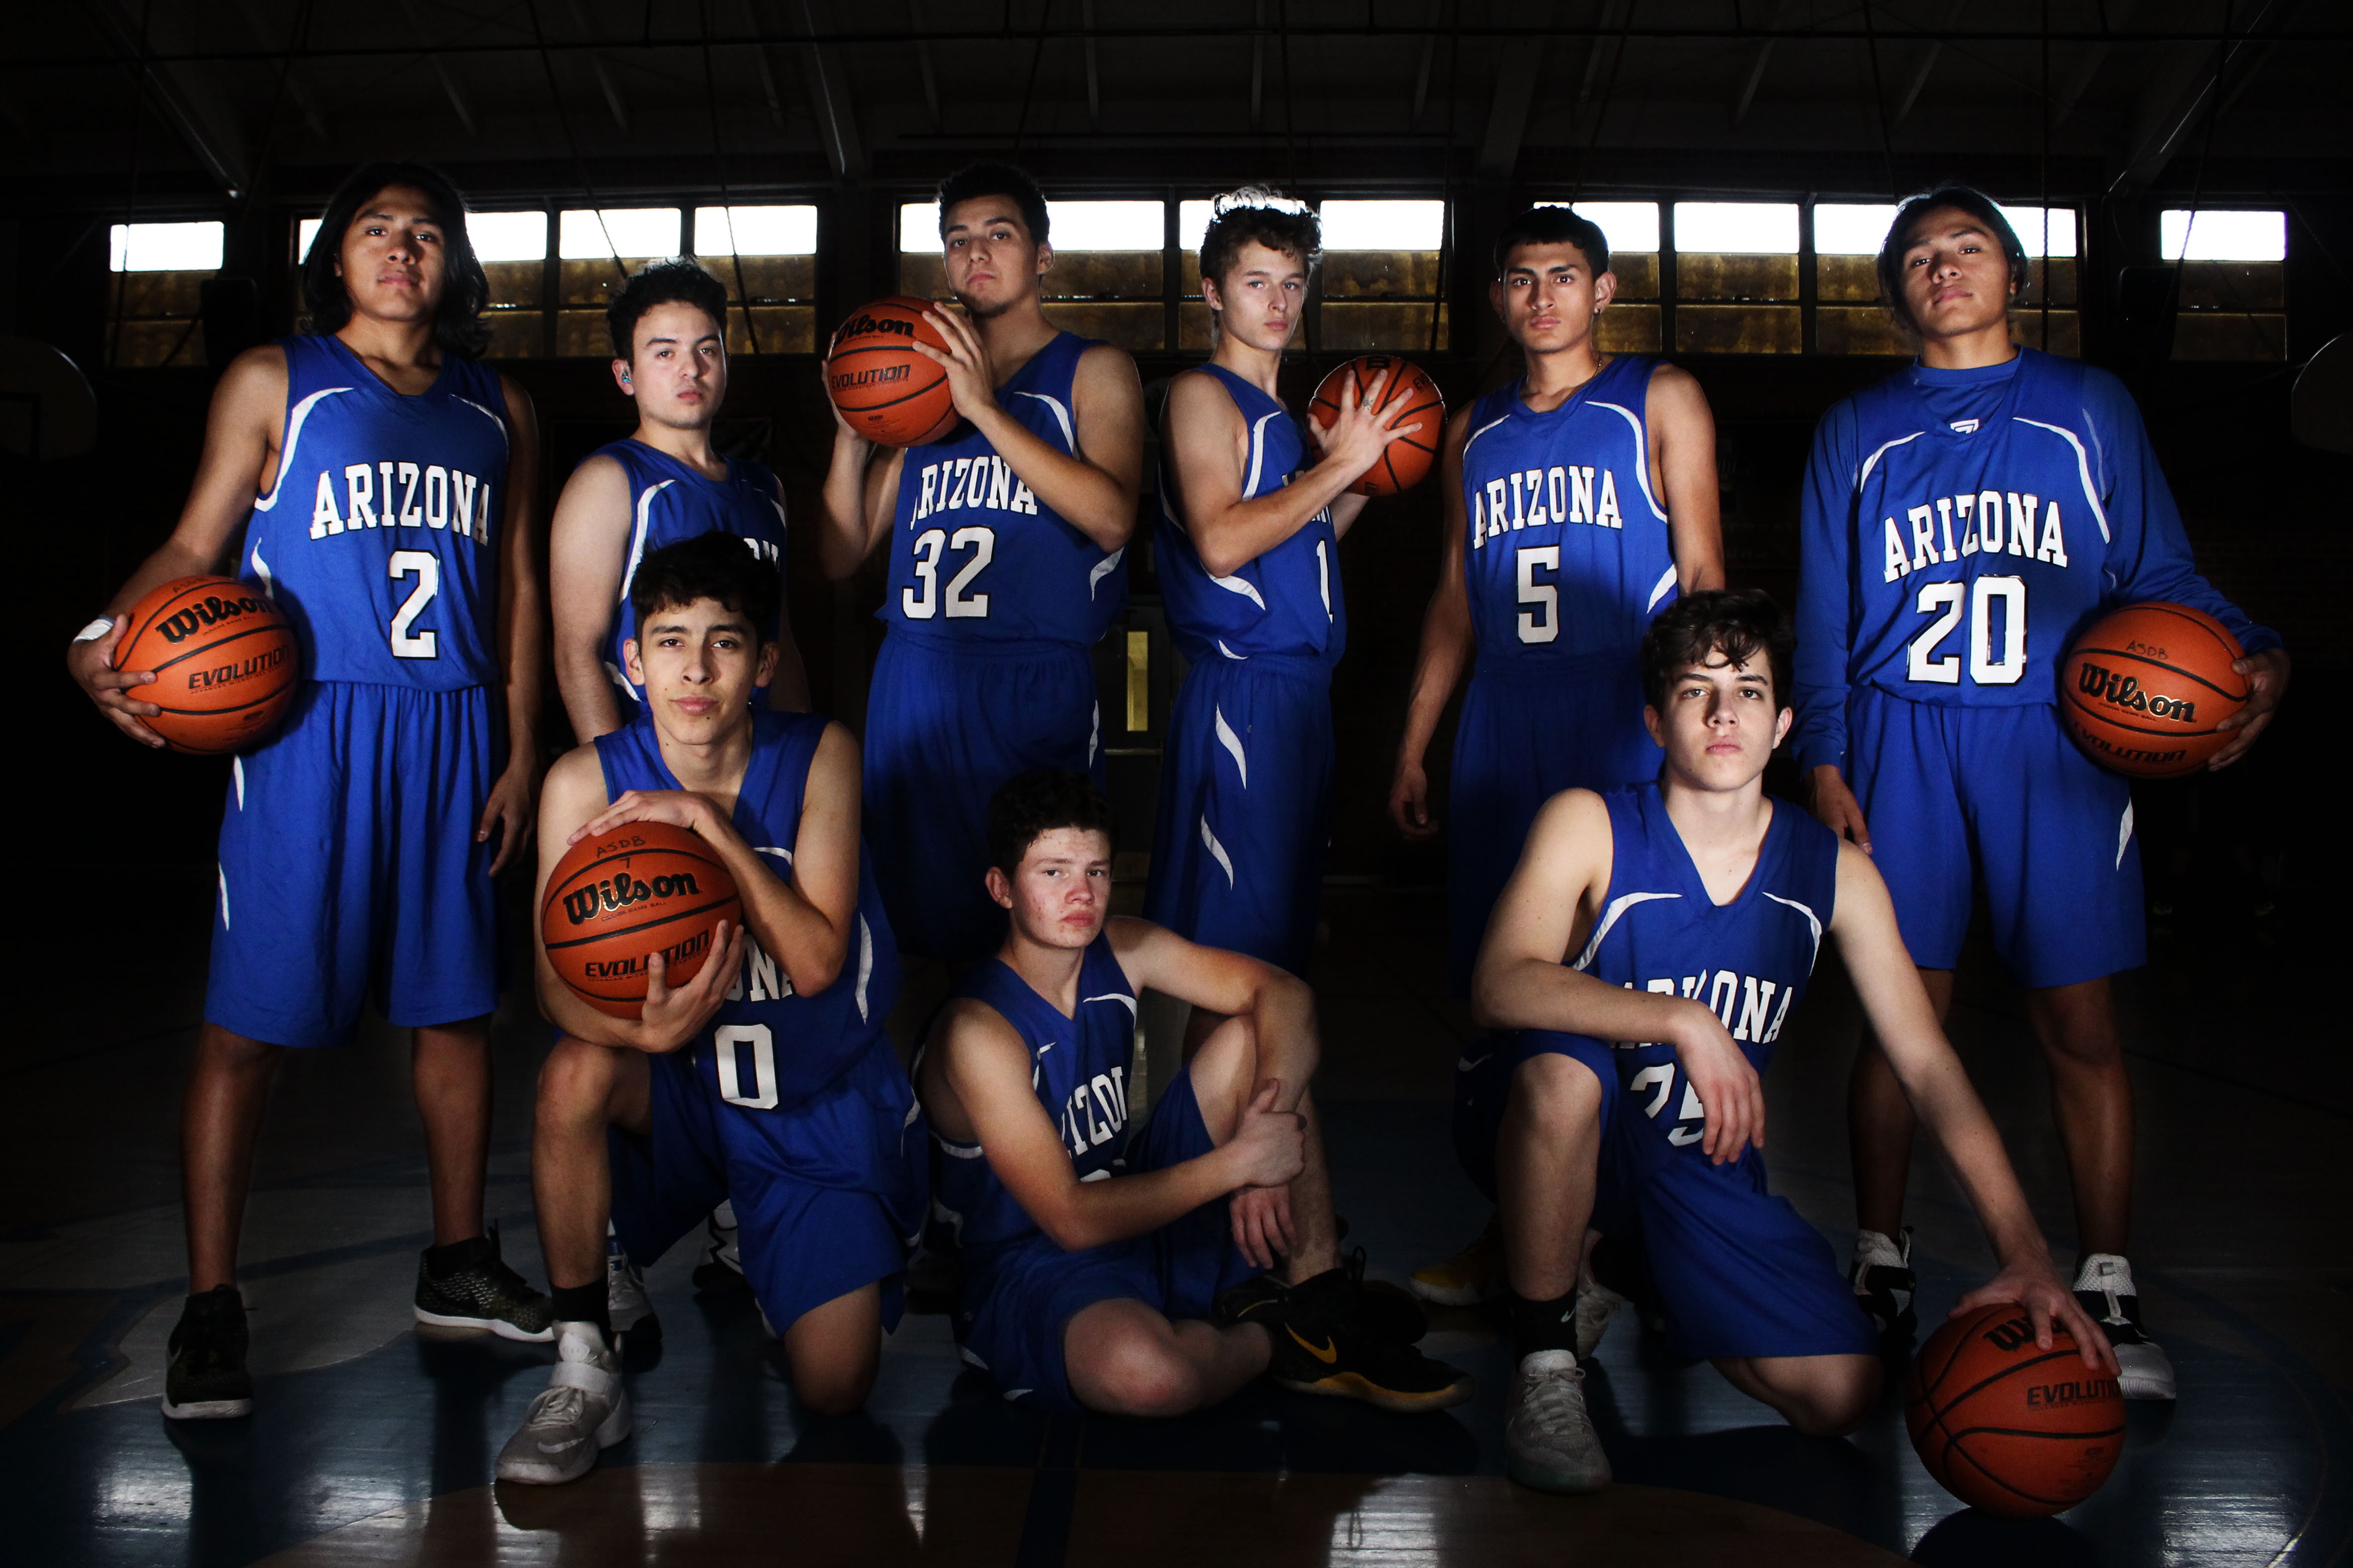 A dramatic portrait of the ASDB Boys' Basketball Team 2018-2019. Nine boys look serious at the camera holding basketballs.